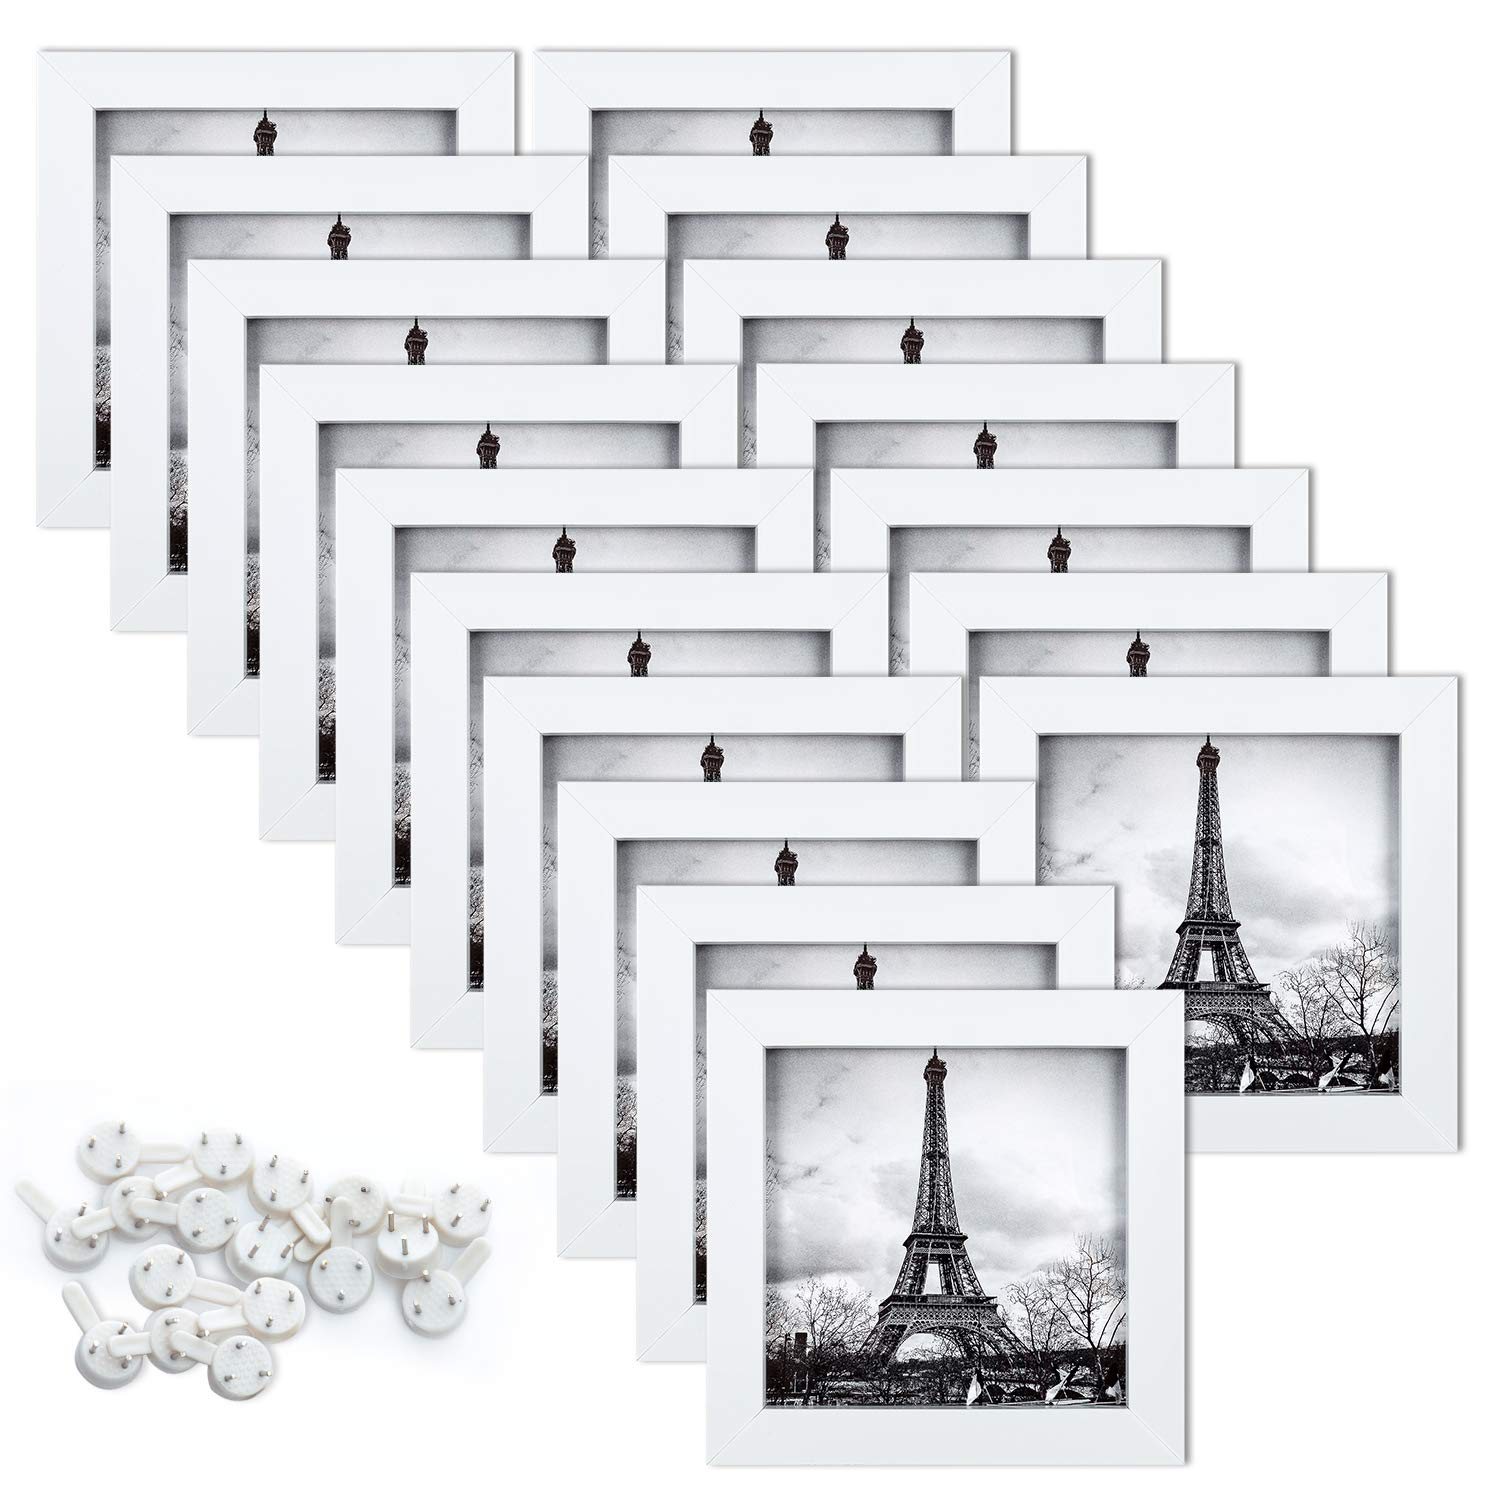 upsimples 5x5 Picture Frame Set of 17,Multi Photo Frames Collage for Wall or Tabletop Display,White by upsimples